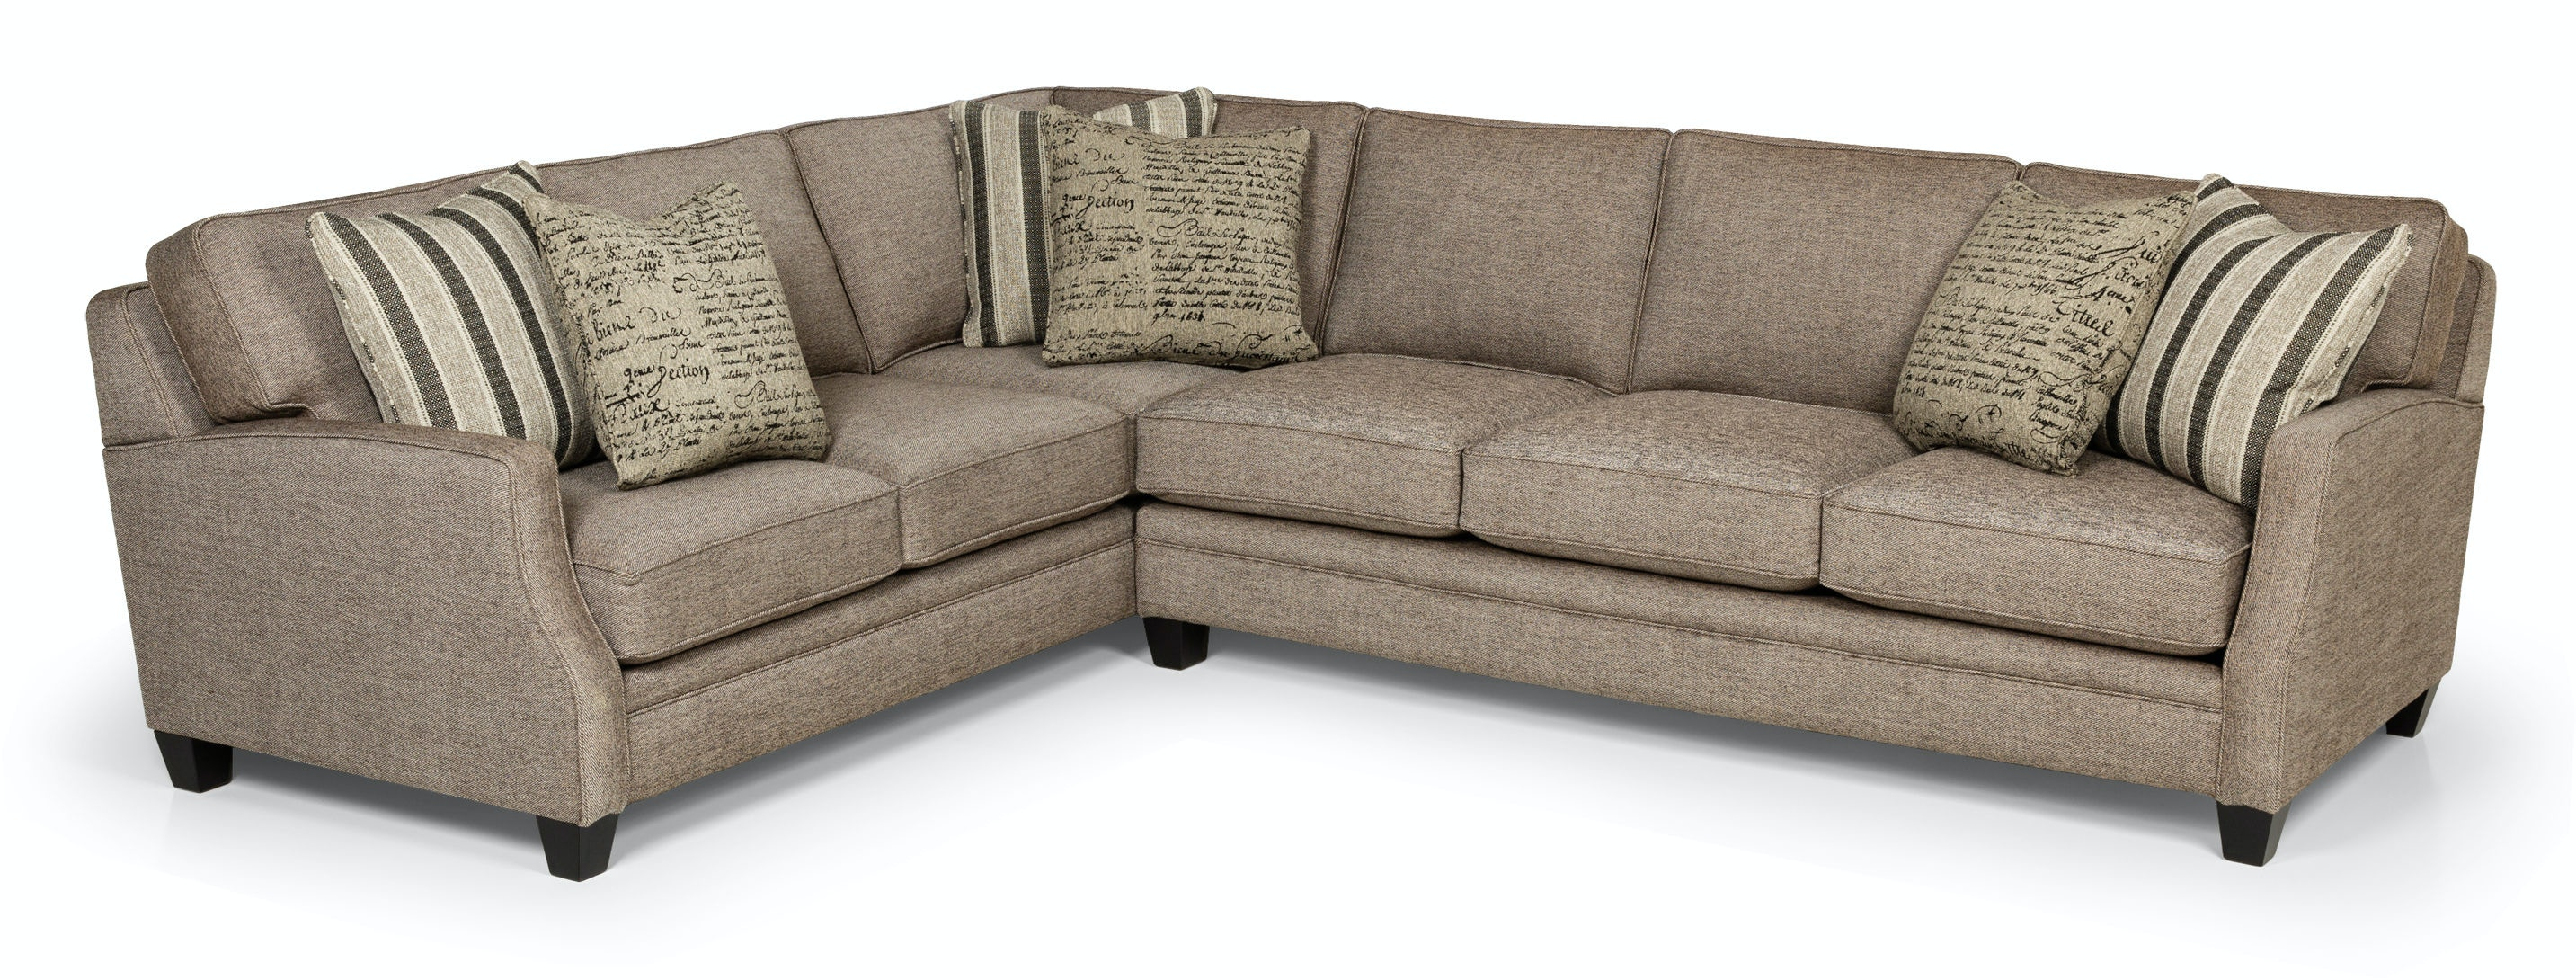 Stanton Furniture Living Room Sectional The Living Room Part 60